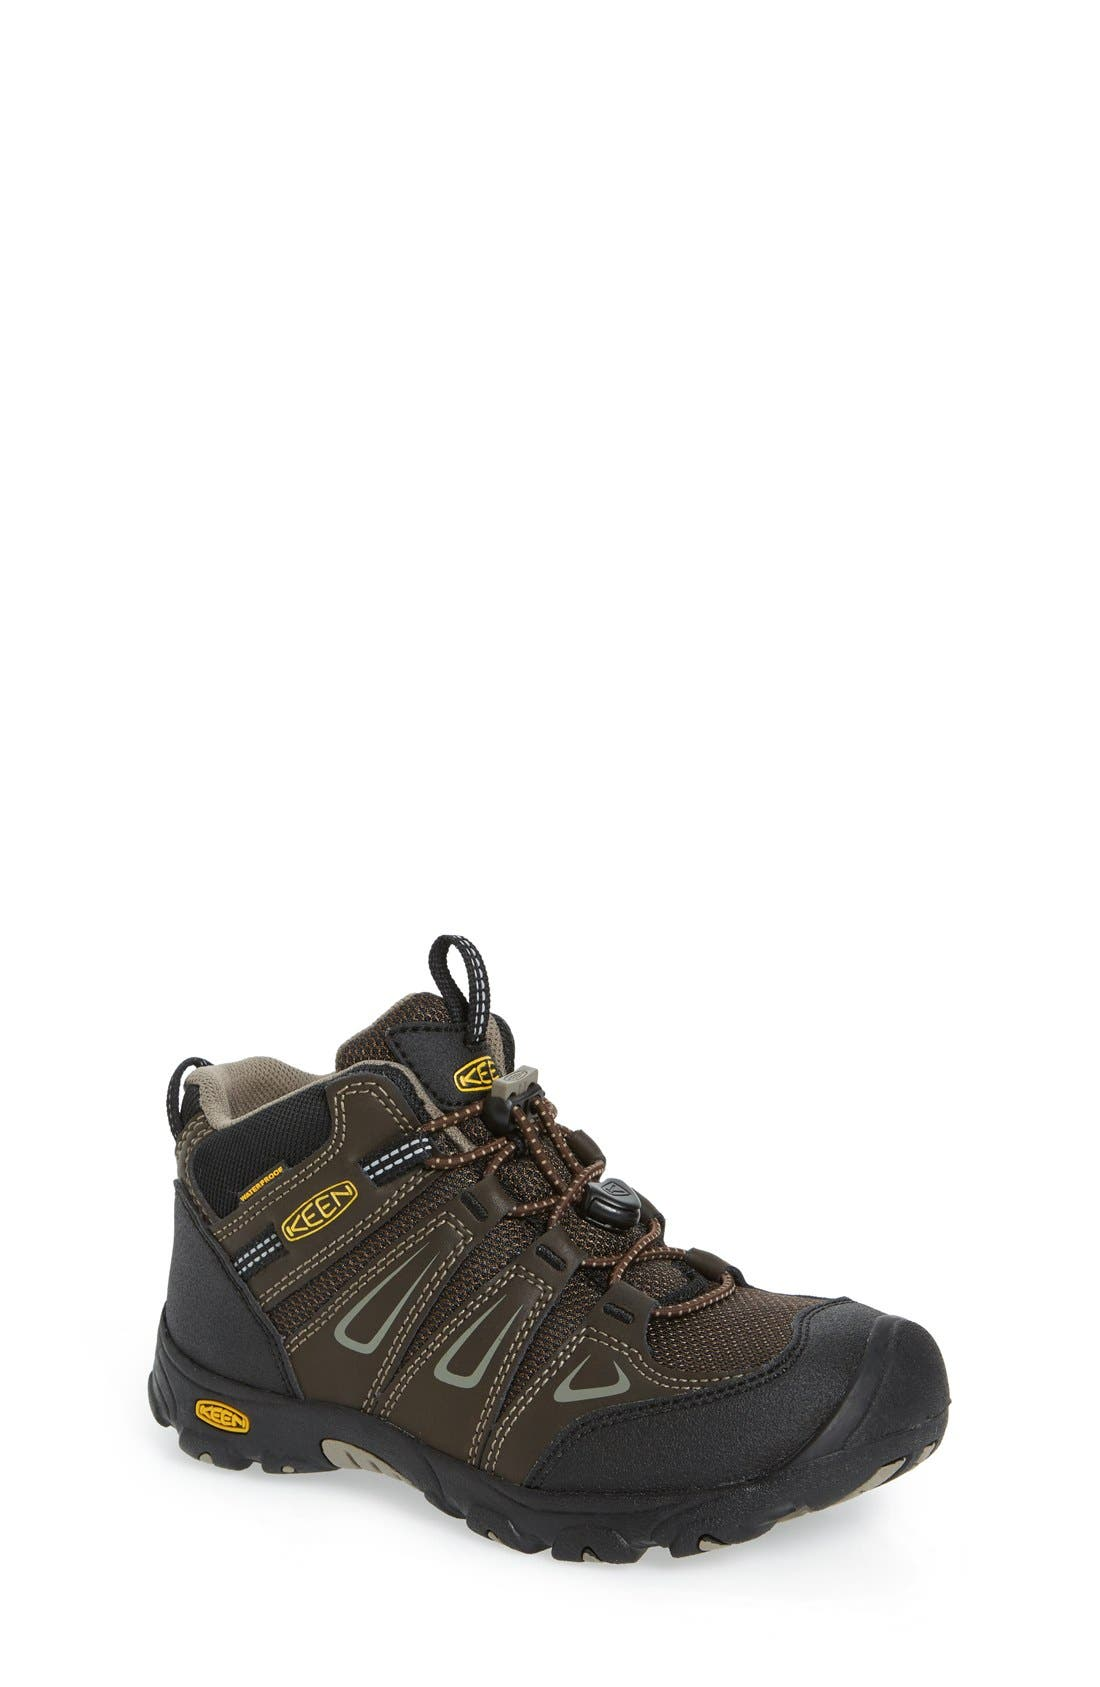 'Oakridge' Waterproof Hiking Boot,                         Main,                         color, 210